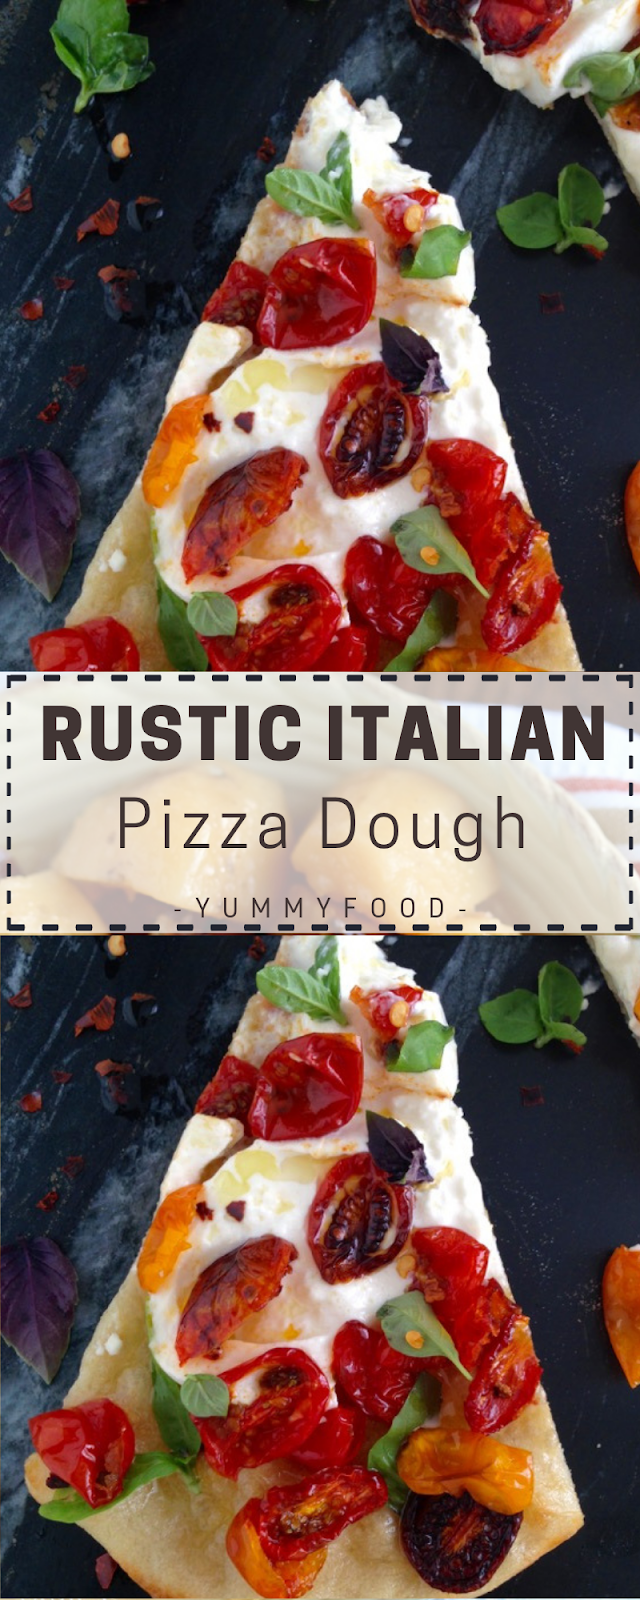 Rustic Itаlіаn Pizza Dоugh Recipe